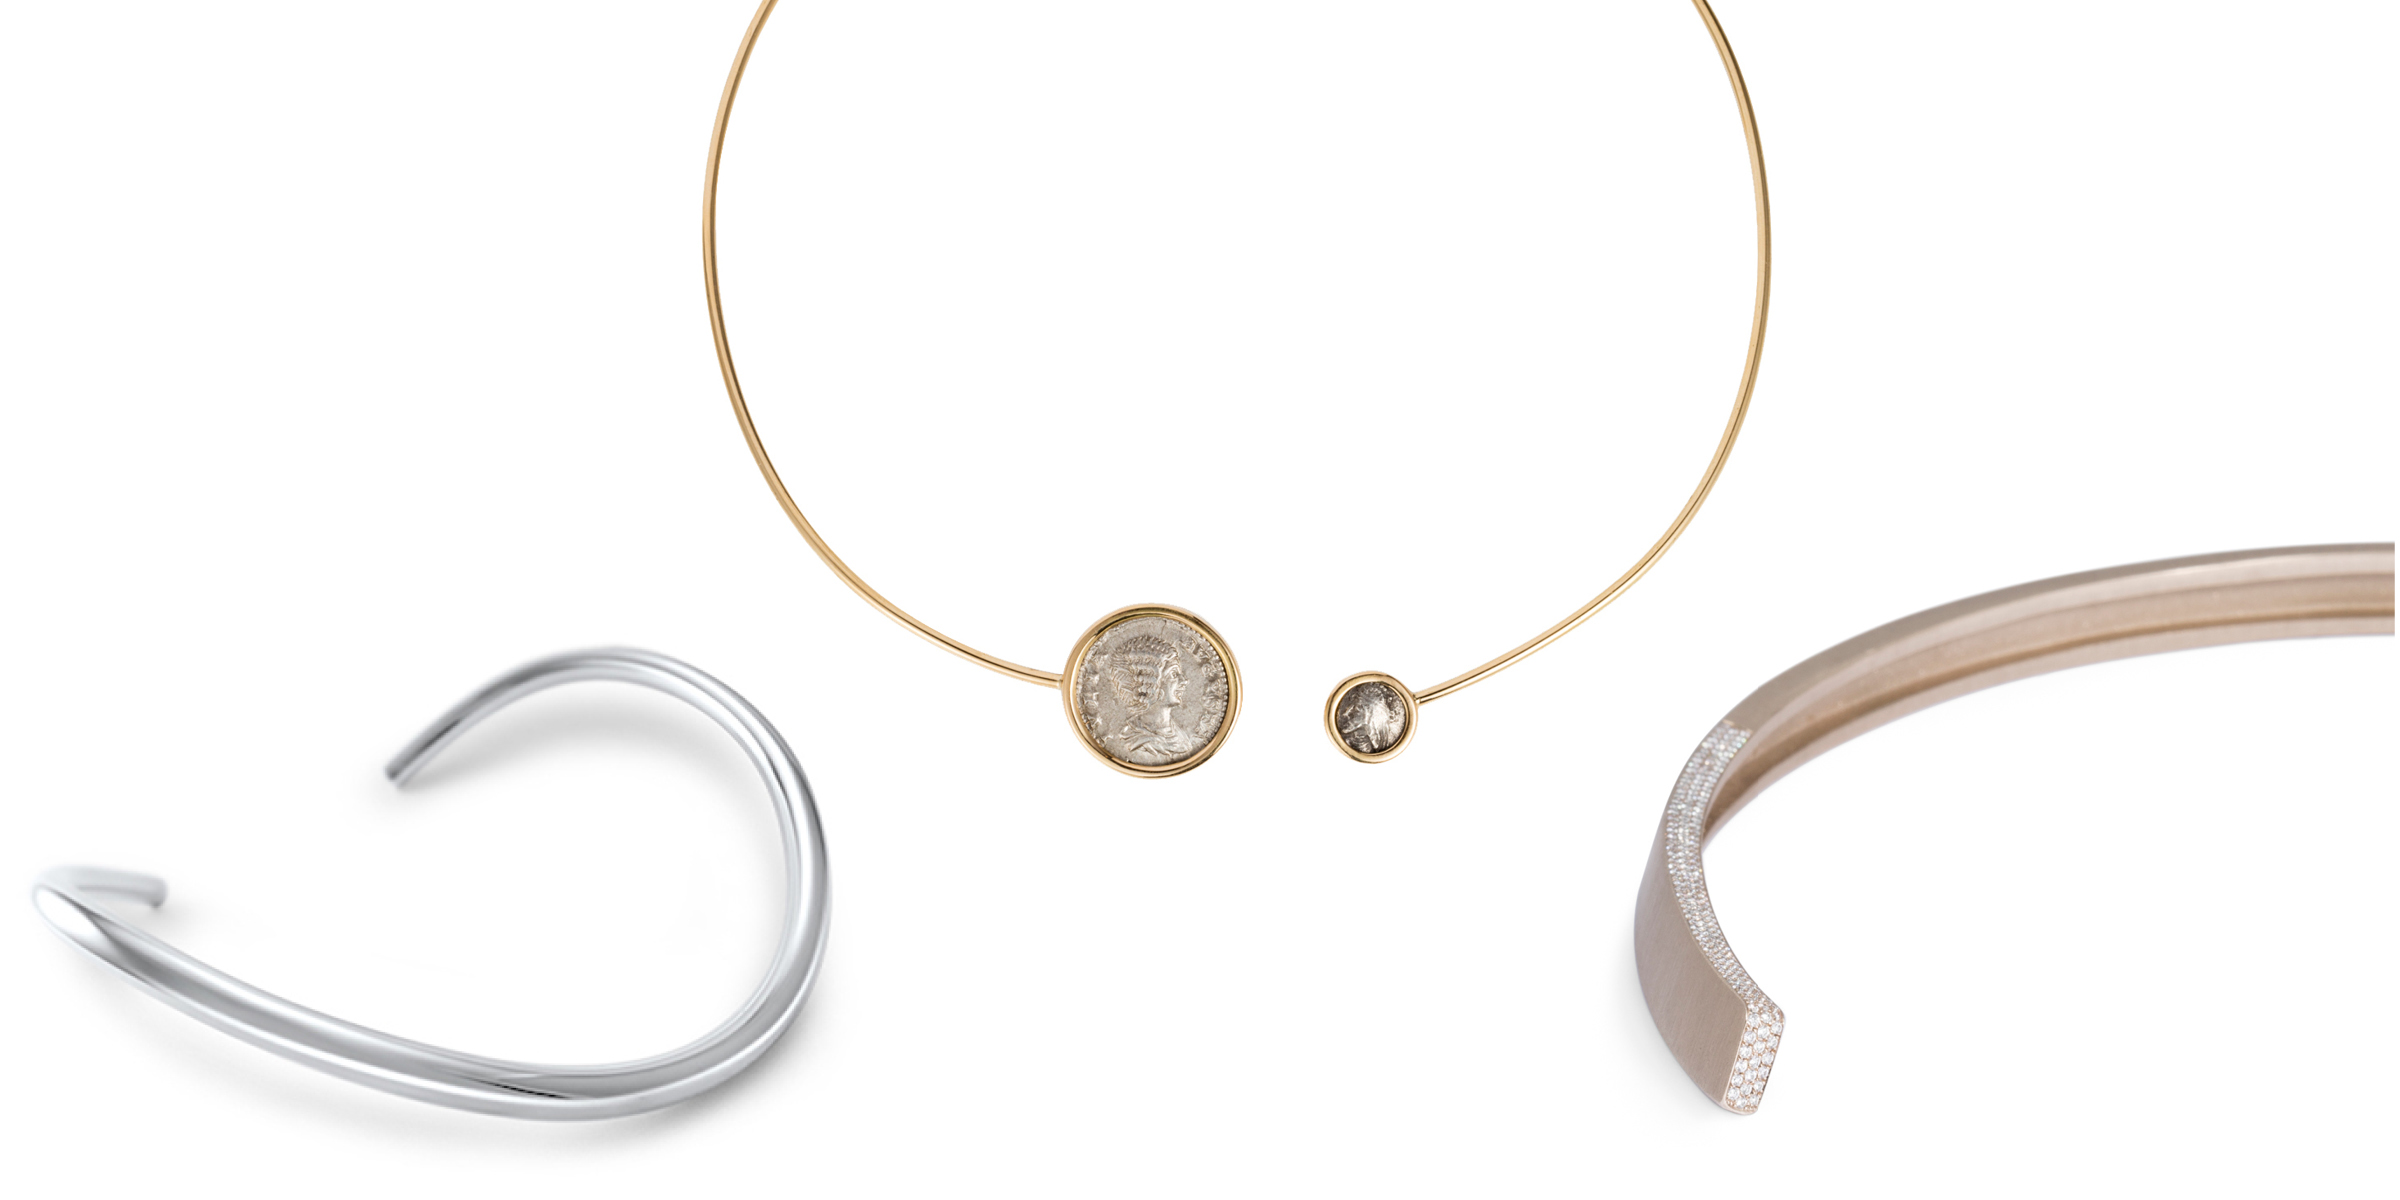 Meet the Modern Torque - a curation of modern jewels based on the ancient Torque or Torc